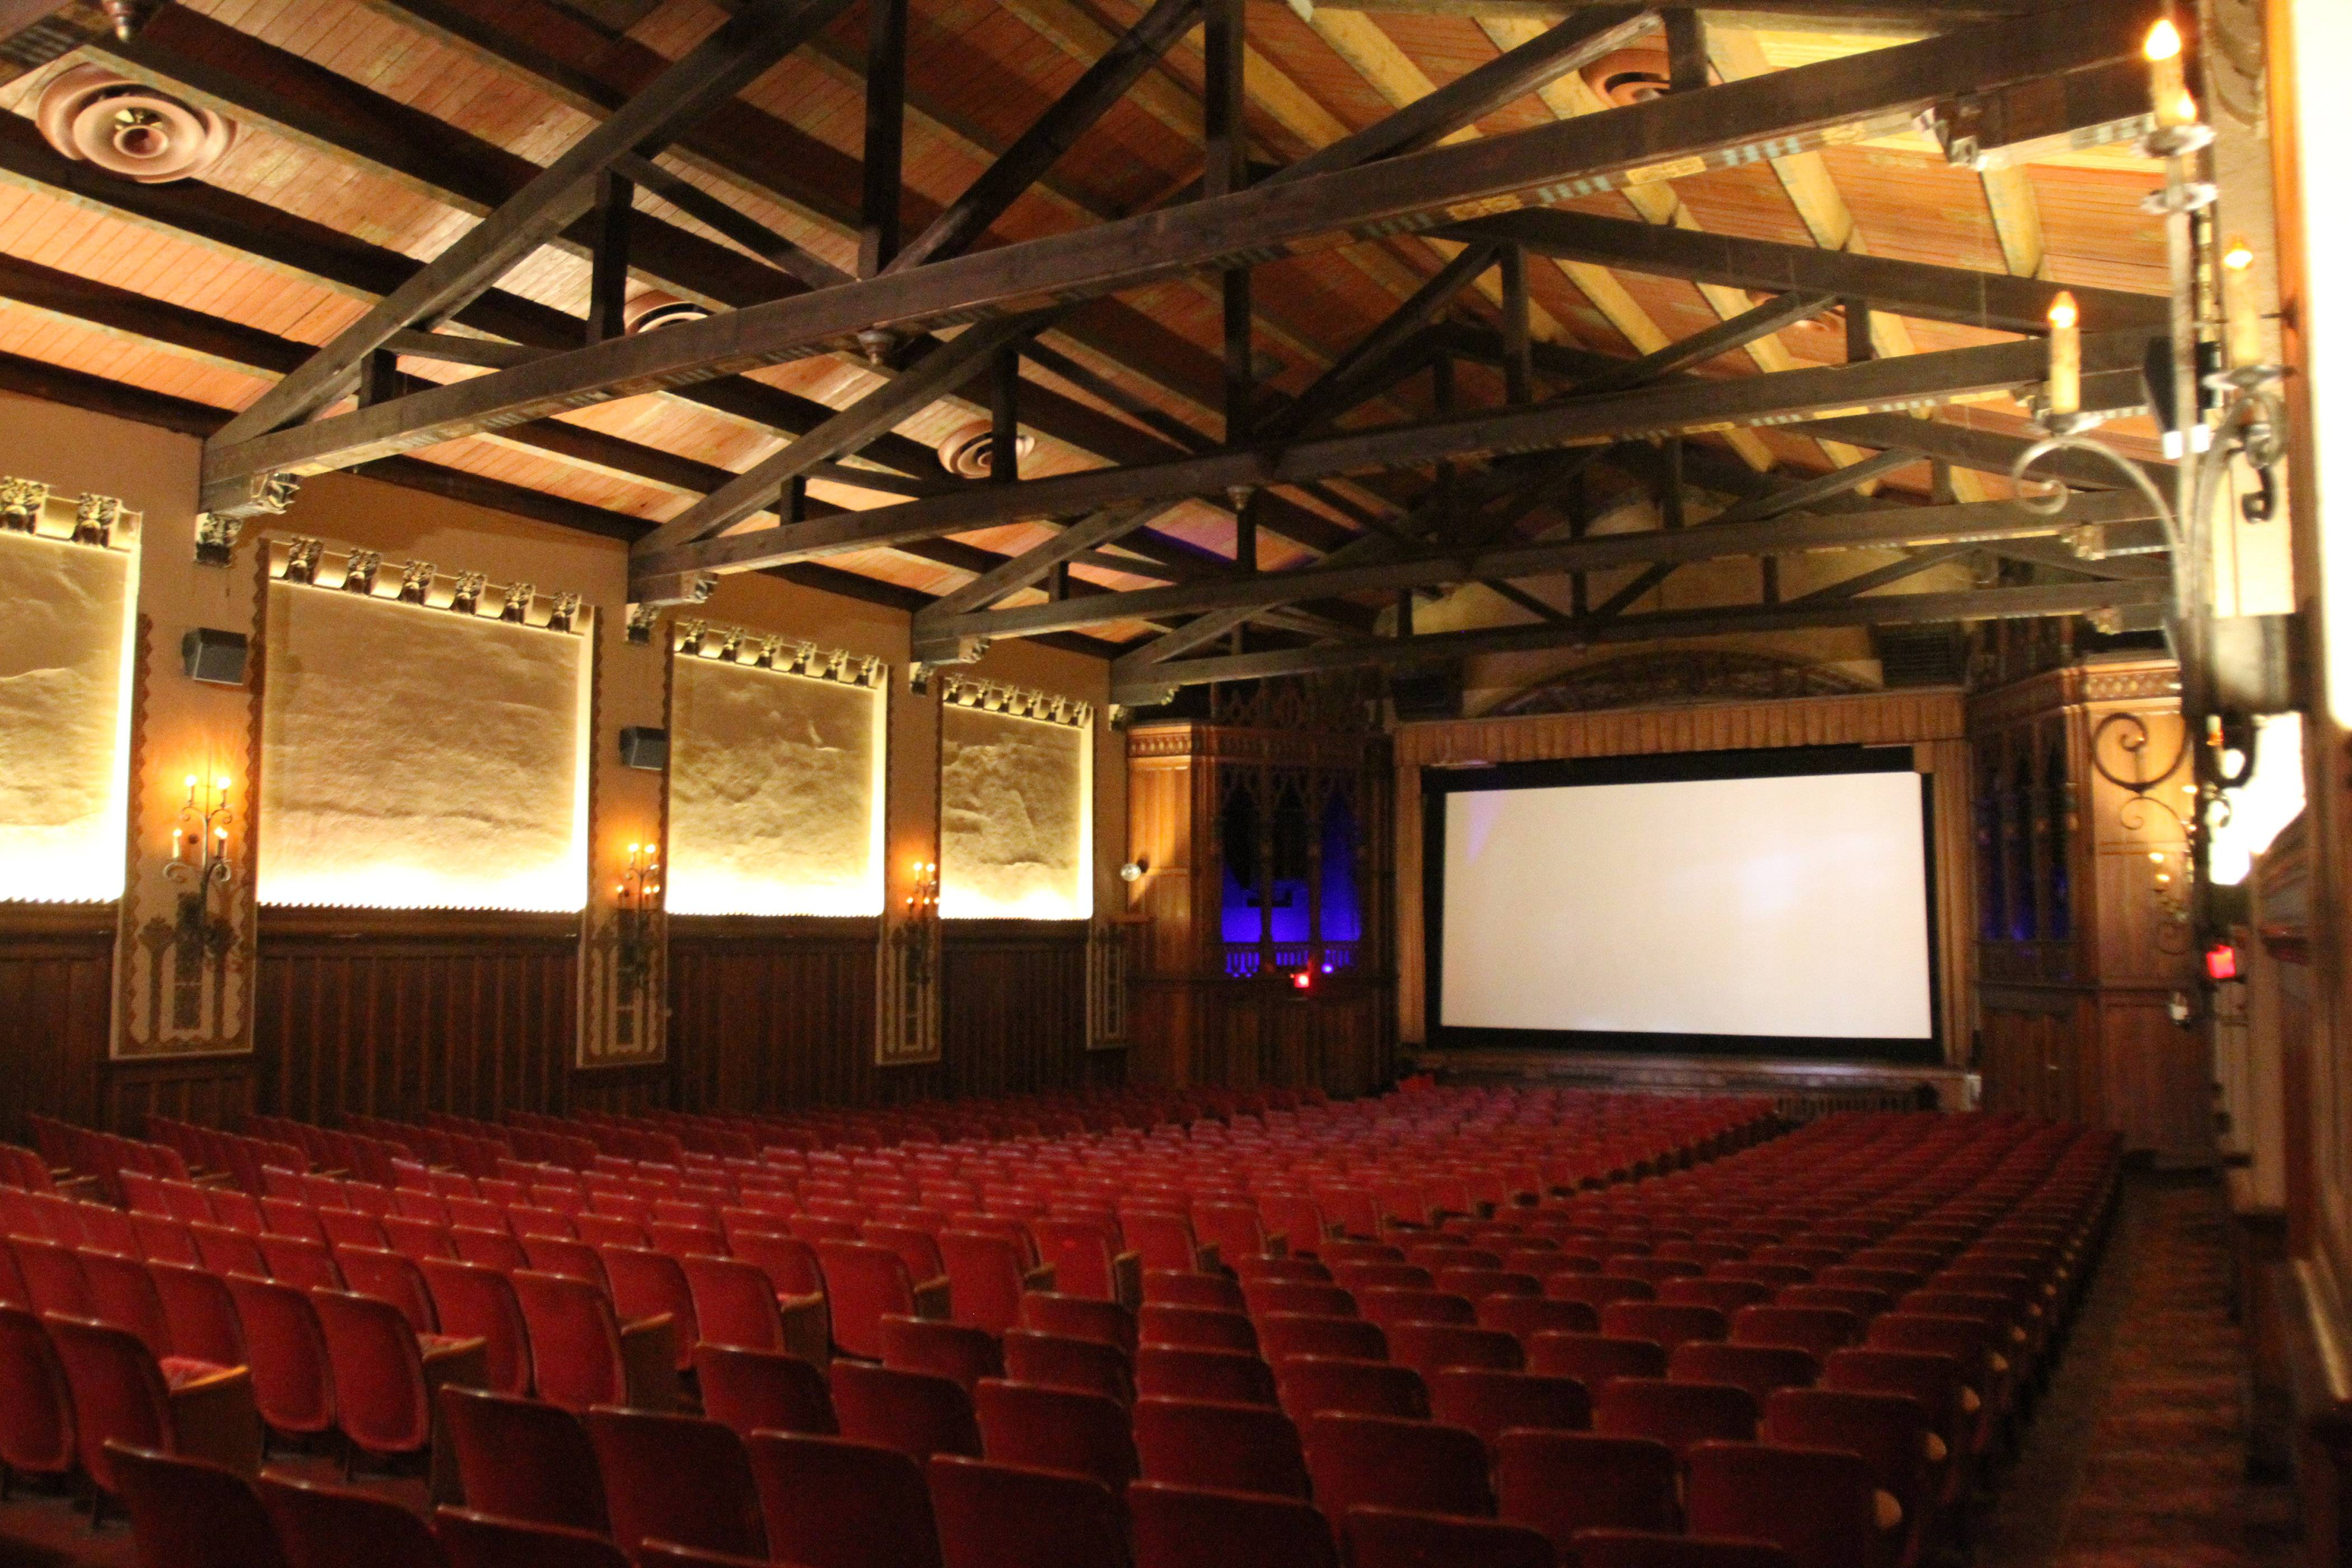 Beloved historic theaters add to movie experience